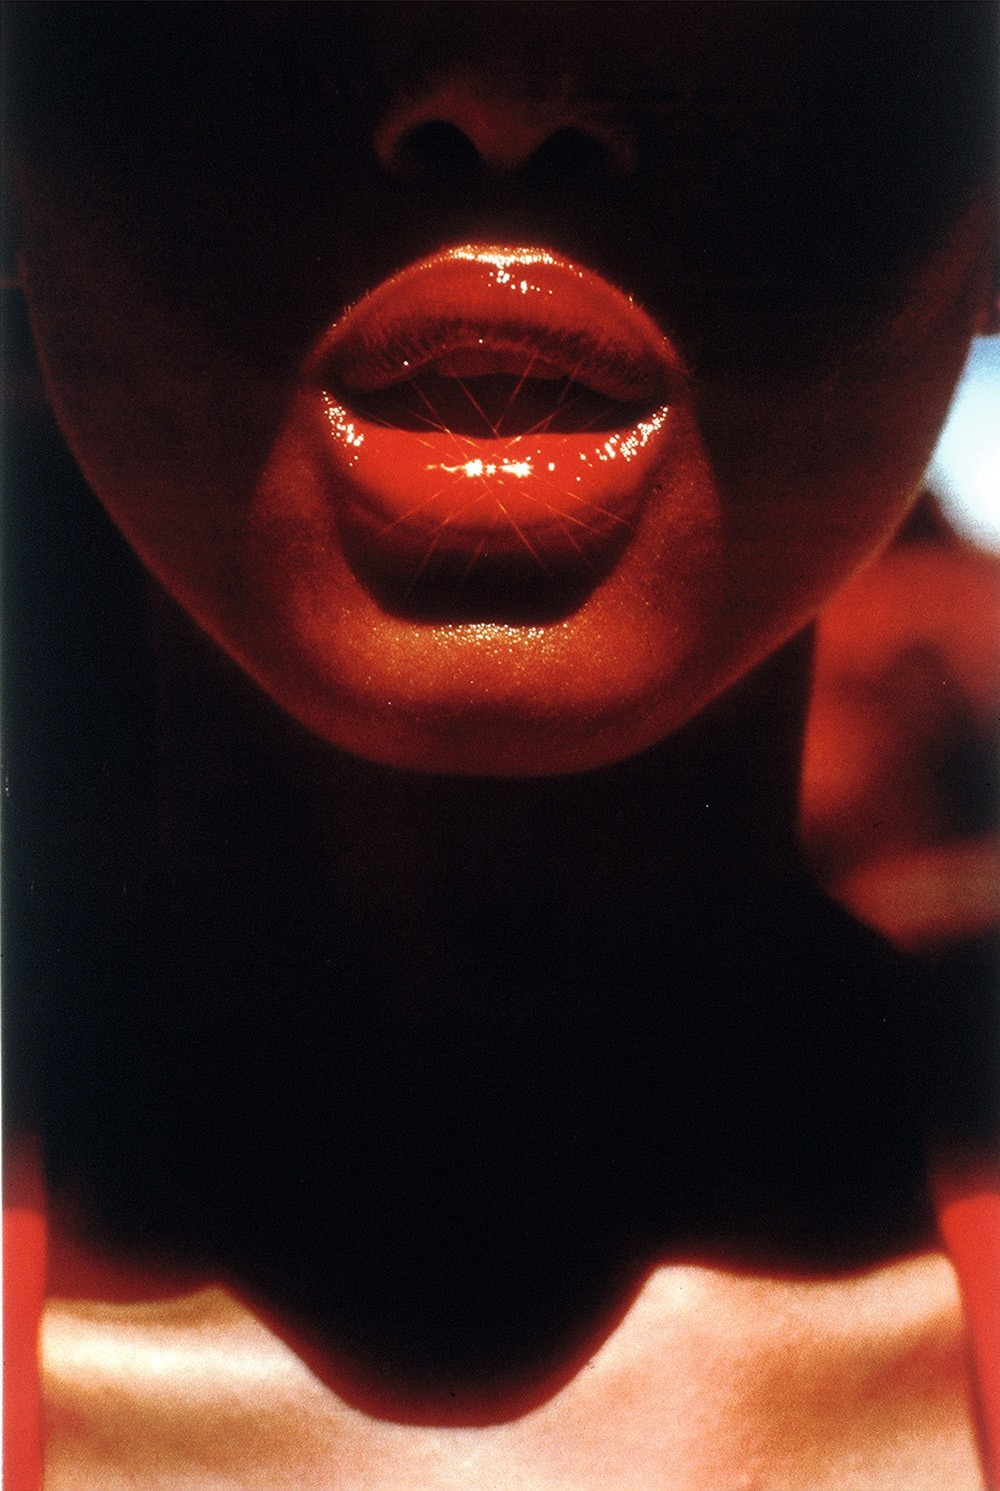 Fashion archive: Pirelli Calendar